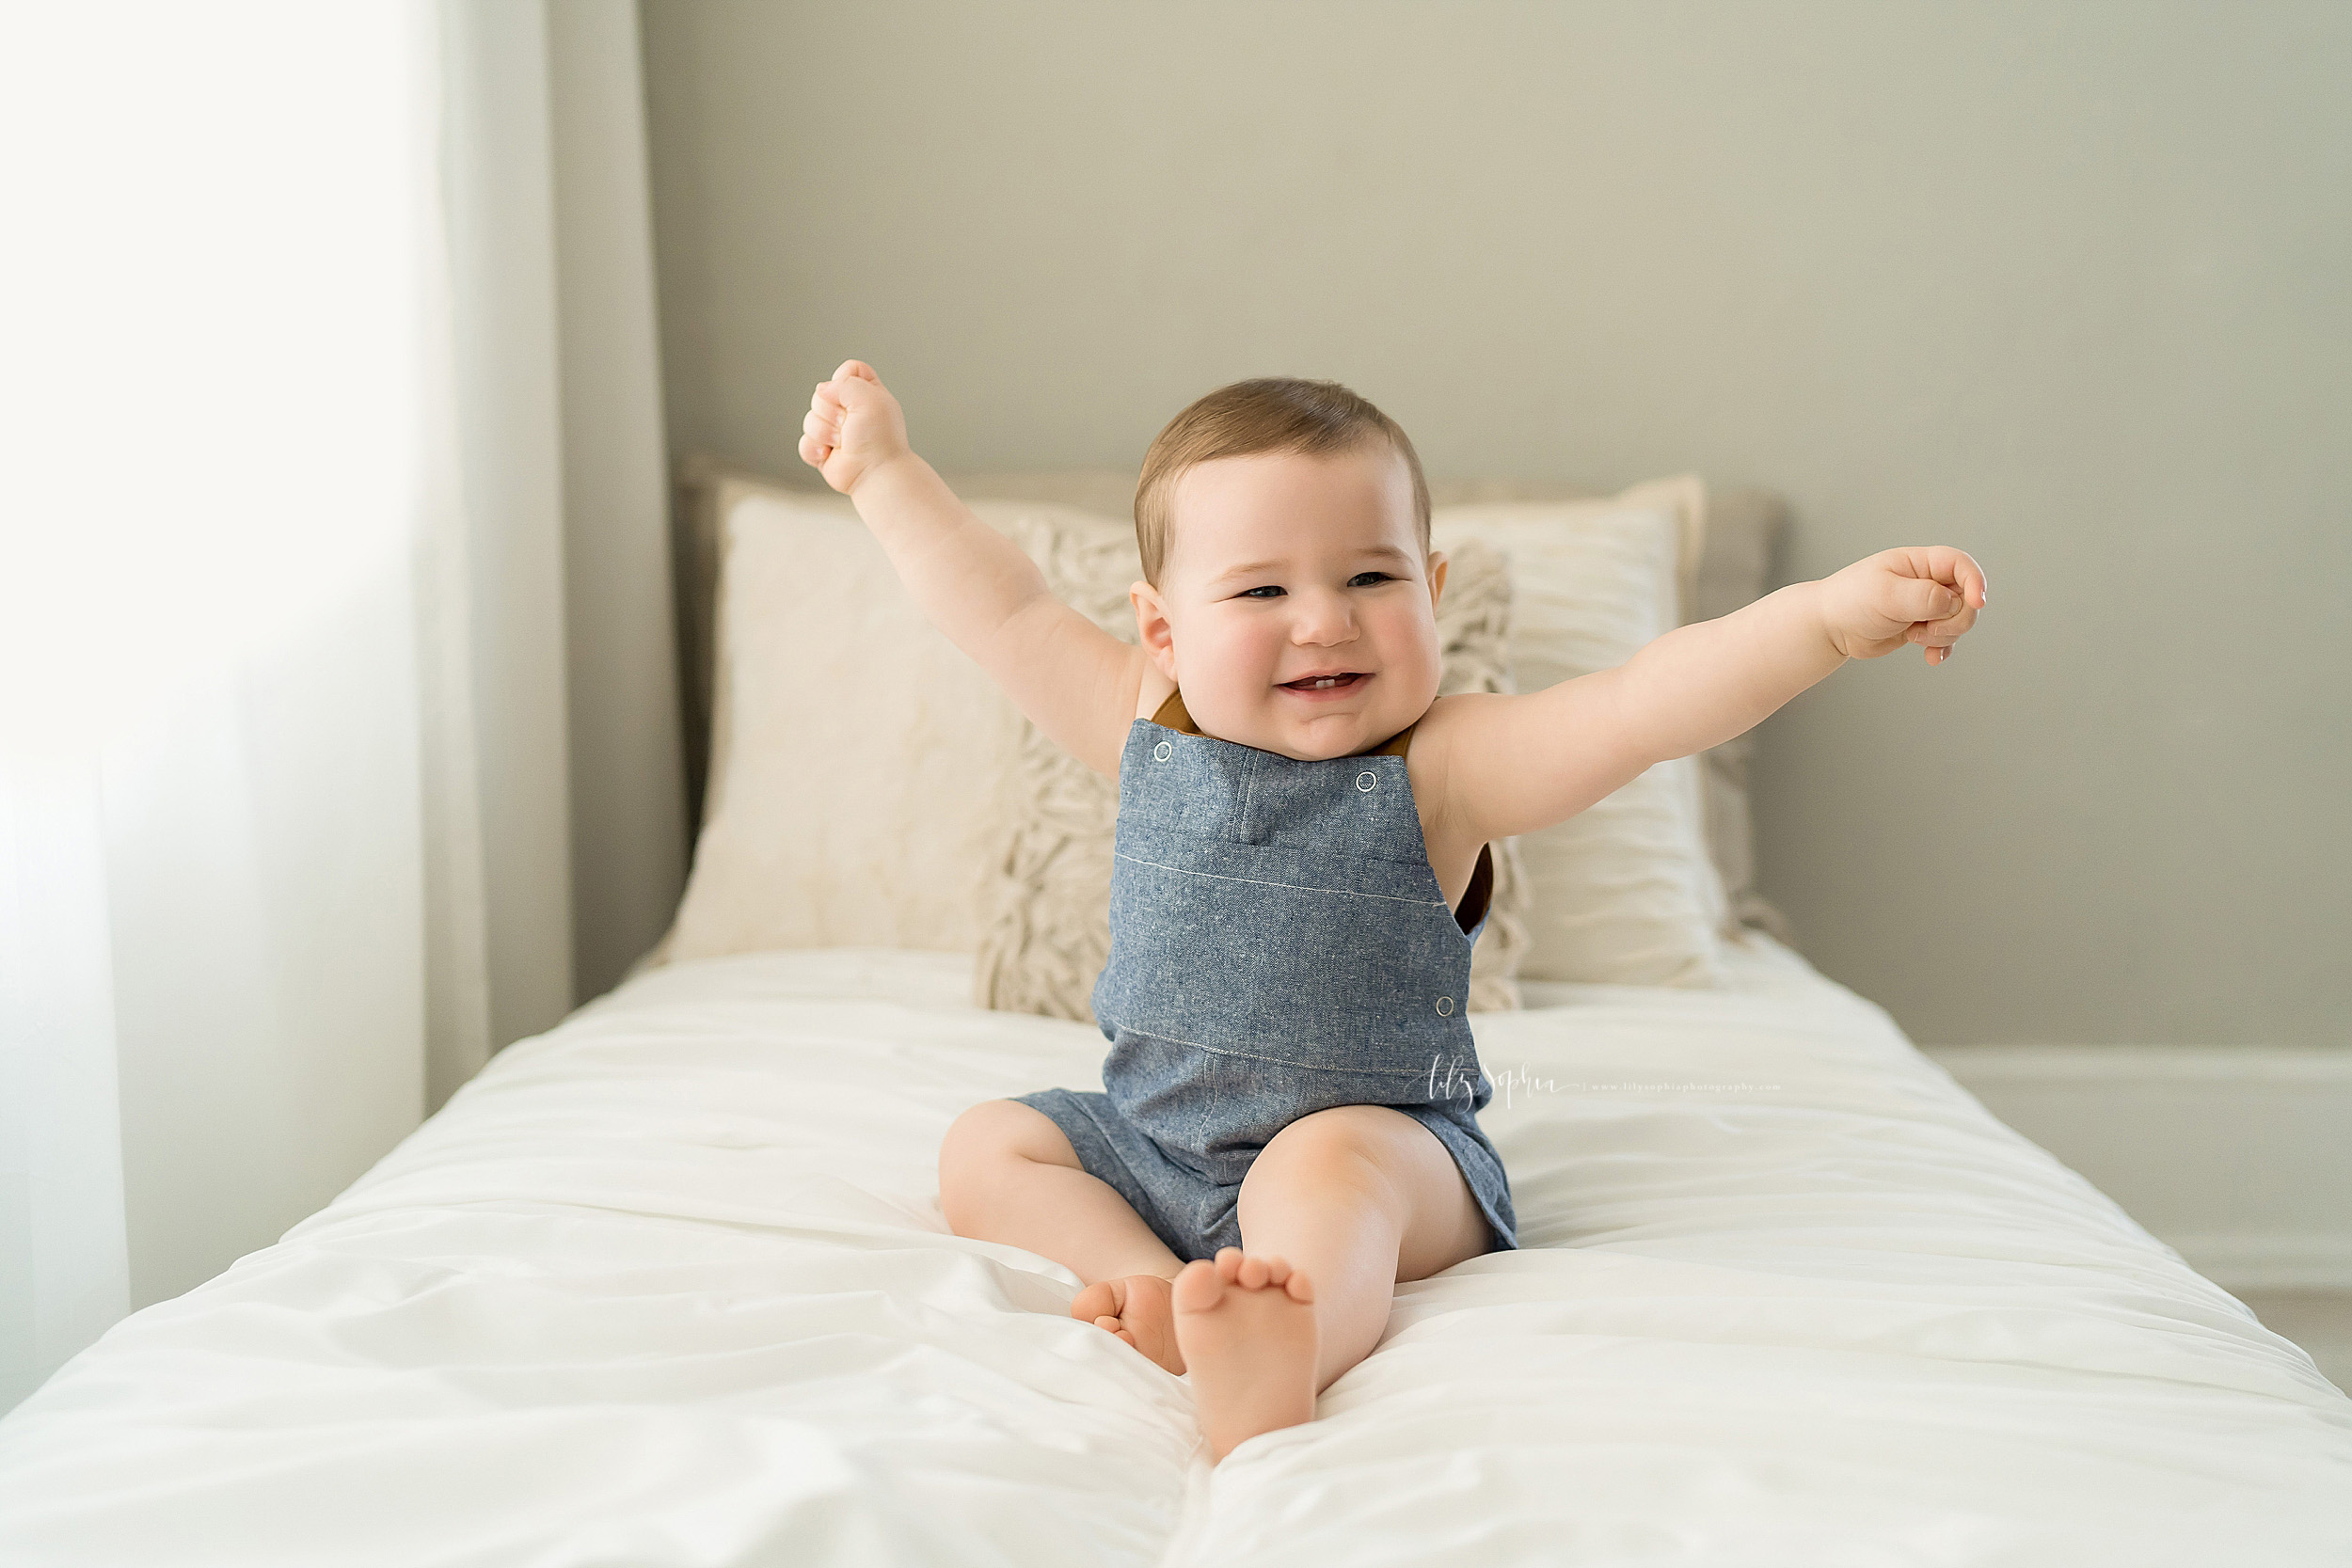 Photo of a proud one year old boy sitting on a bed in a studio in Atlanta wearing a denim one piece outfit and holding his hands in the air to show how big he is taken in natural light.